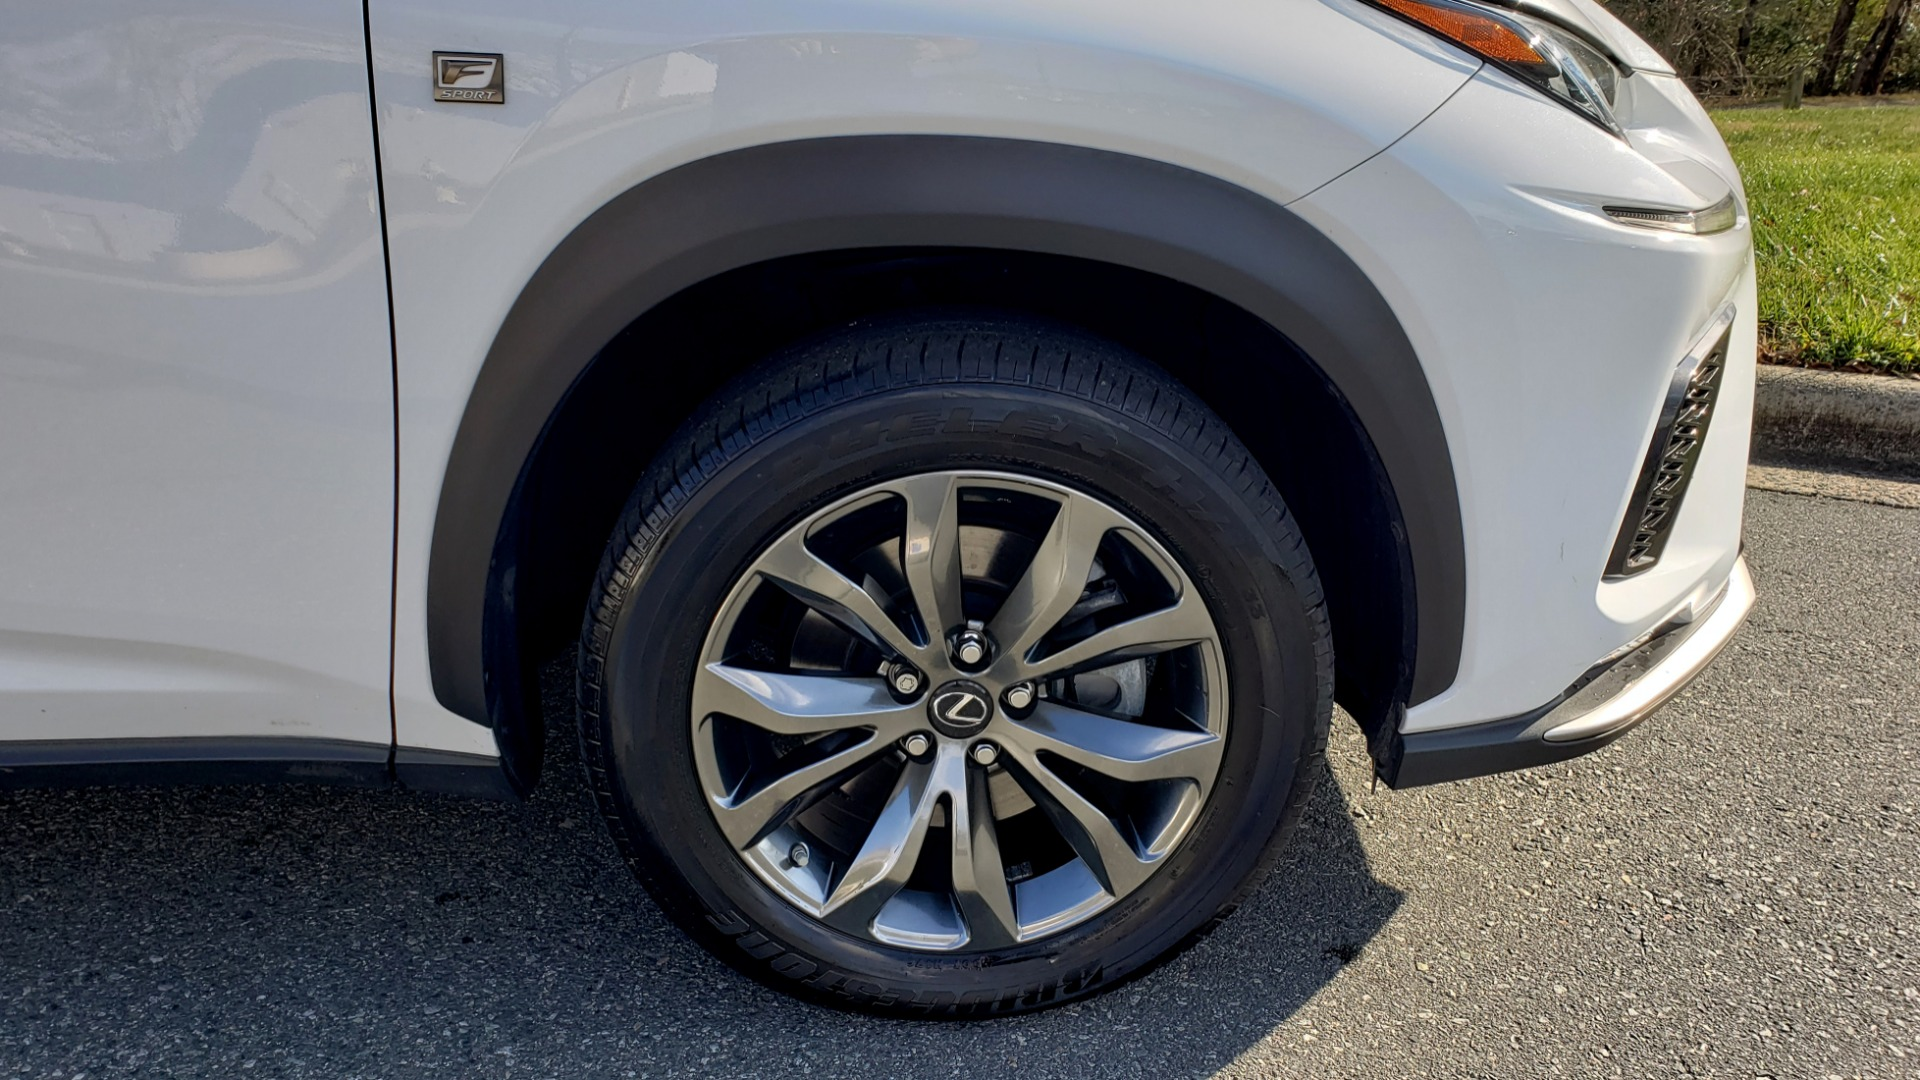 Used 2019 Lexus NX 300 F-SPORT / 2.0L TURBO / LEATHER / 18IN WHEELS / REARVIEW for sale $31,195 at Formula Imports in Charlotte NC 28227 85